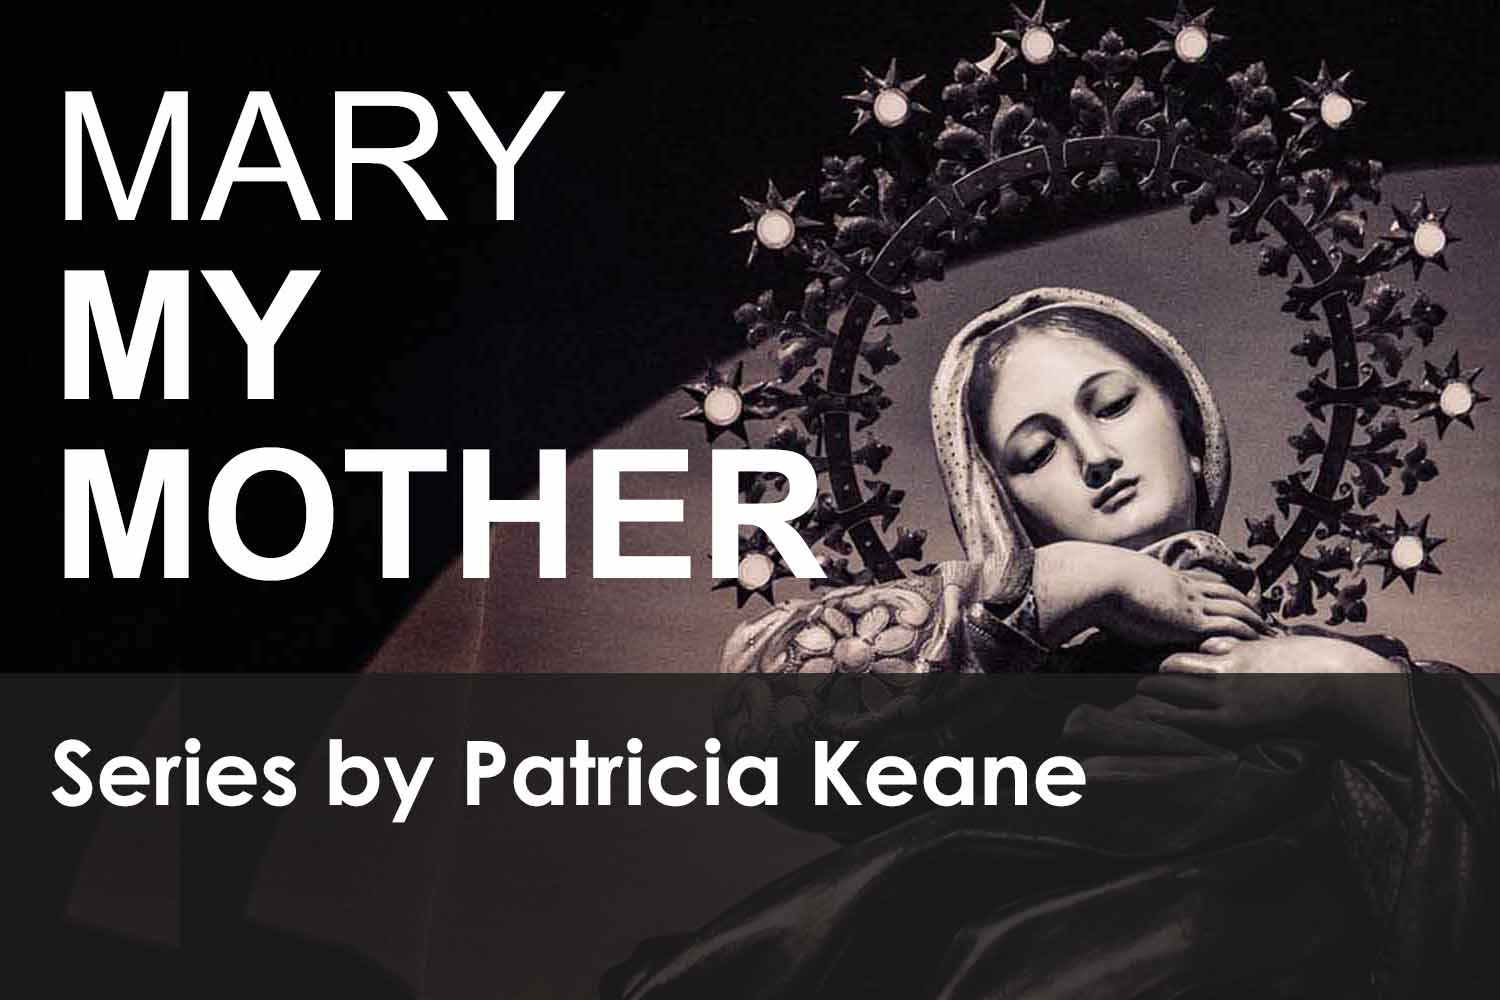 Mary My Mother Series by Patricia Keane